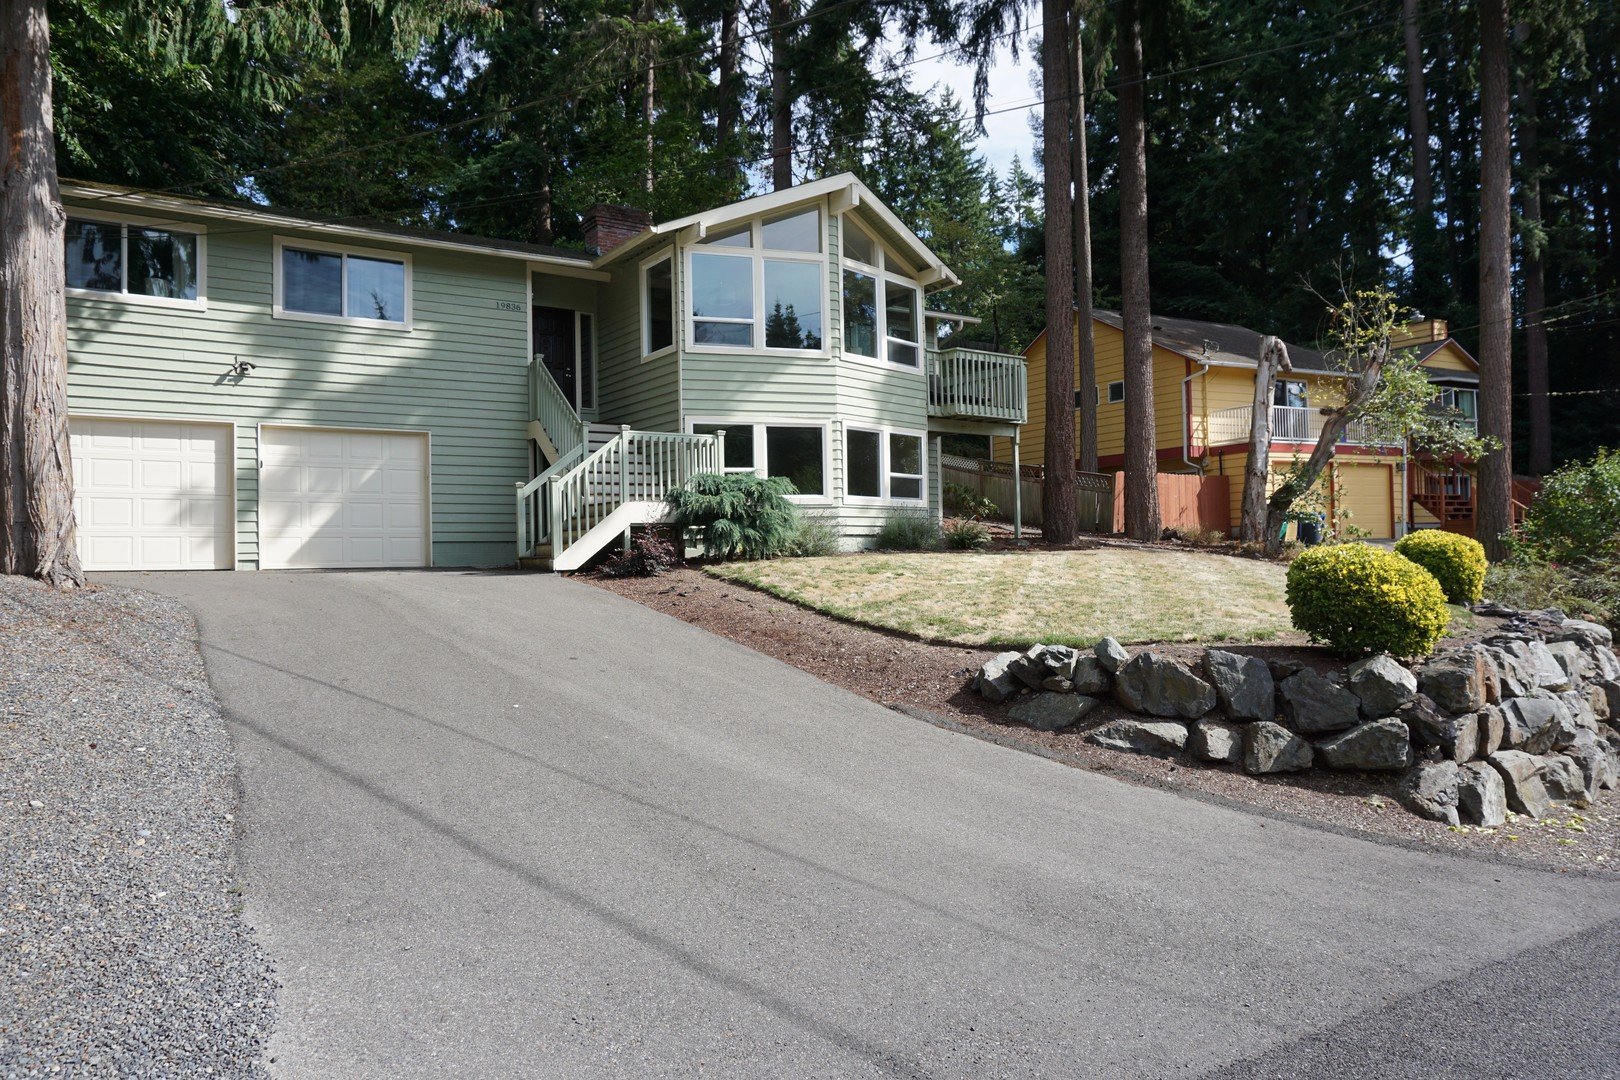 House for Rent in Shoreline